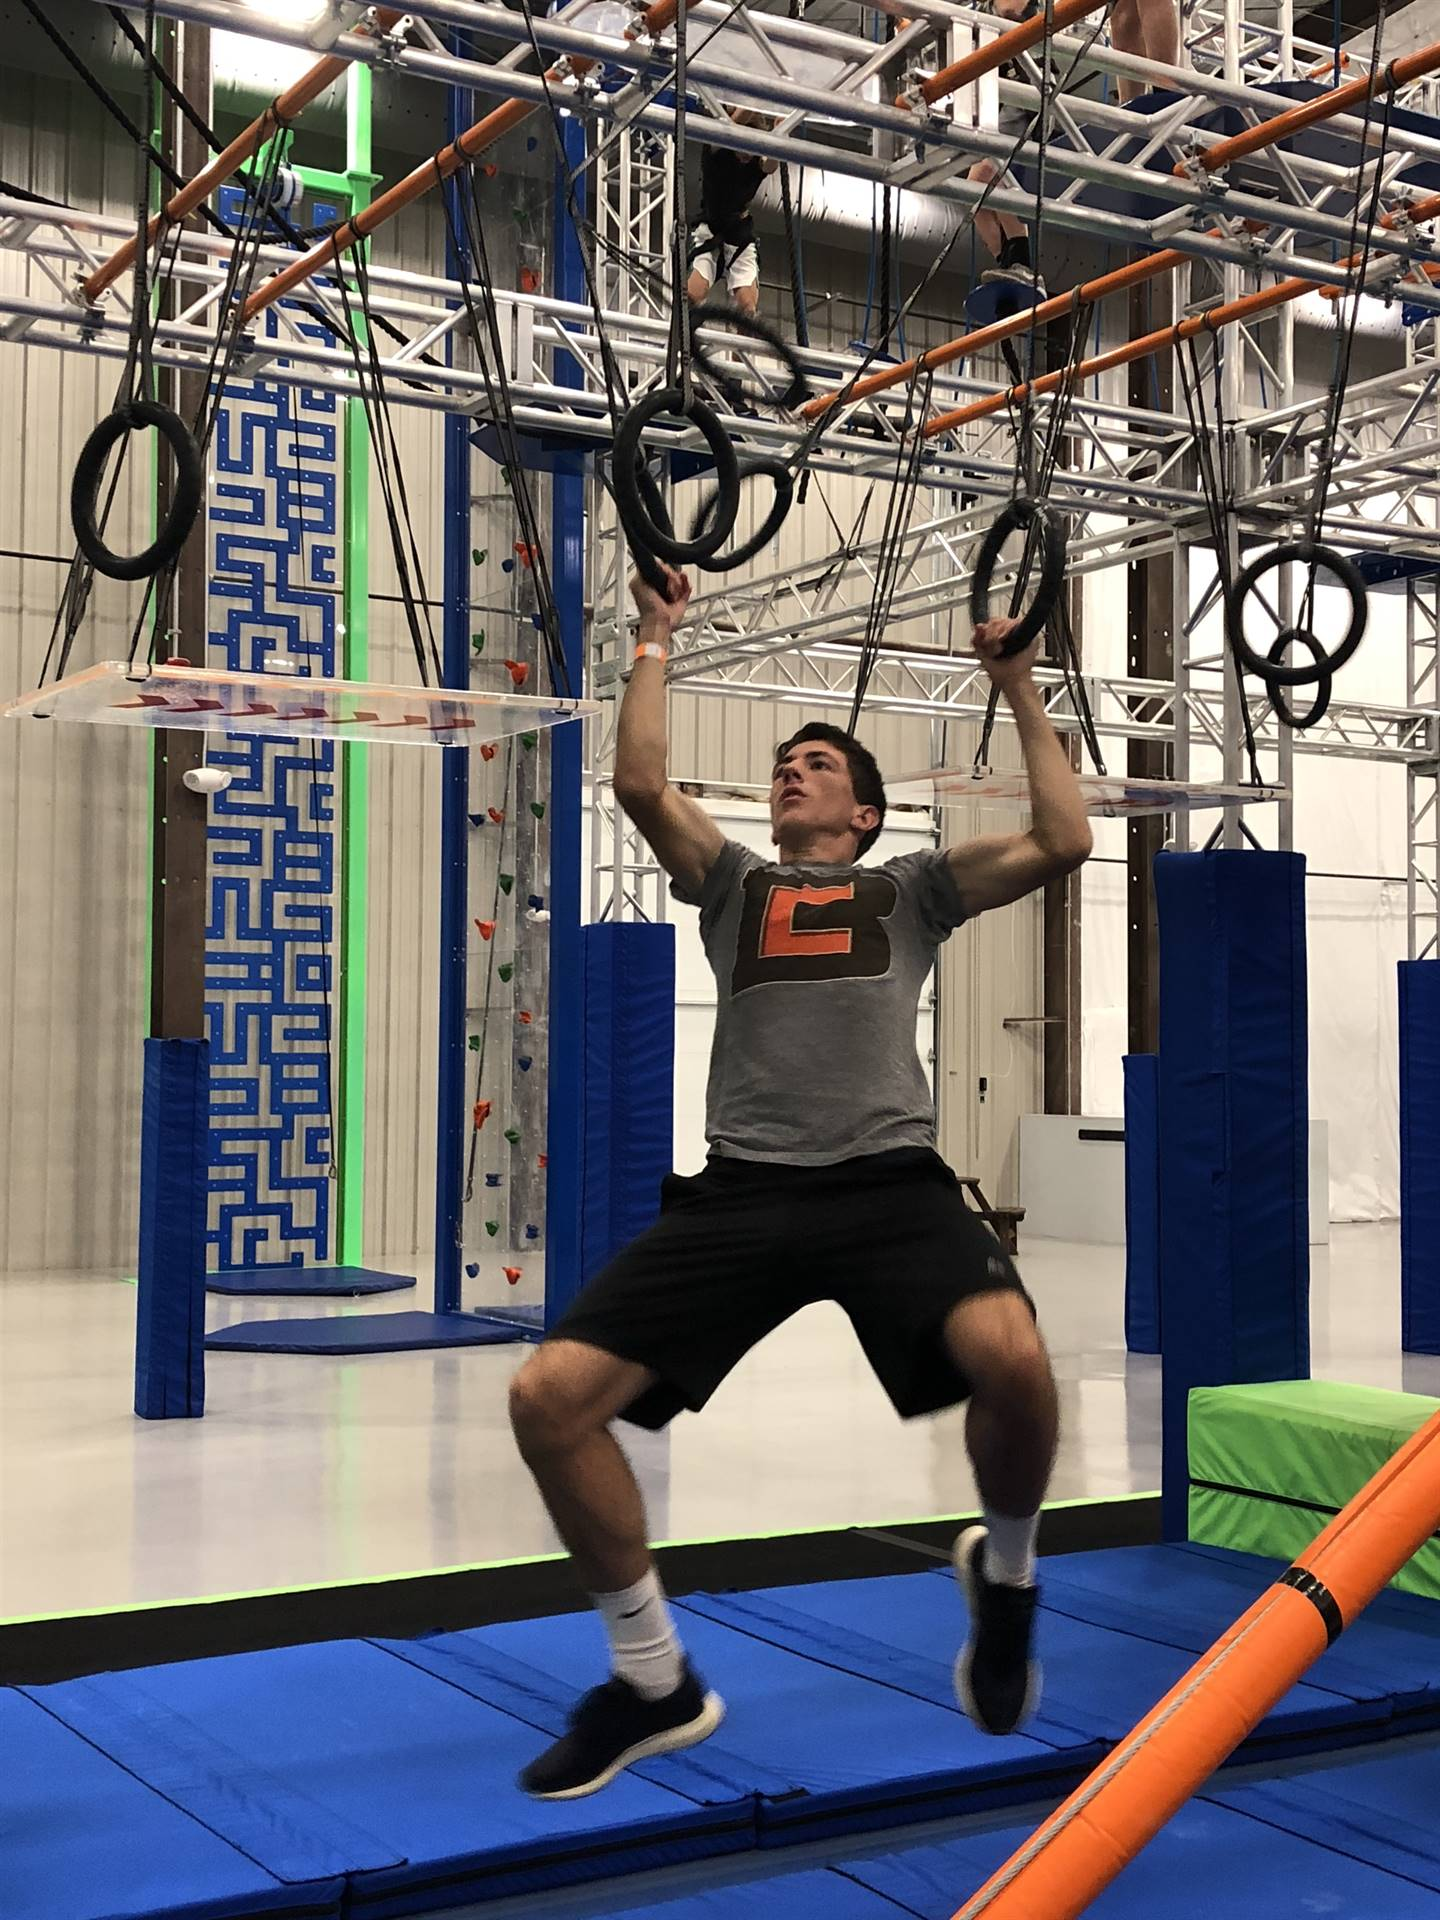 Junior John Ruebsteck getting after it on the rings.